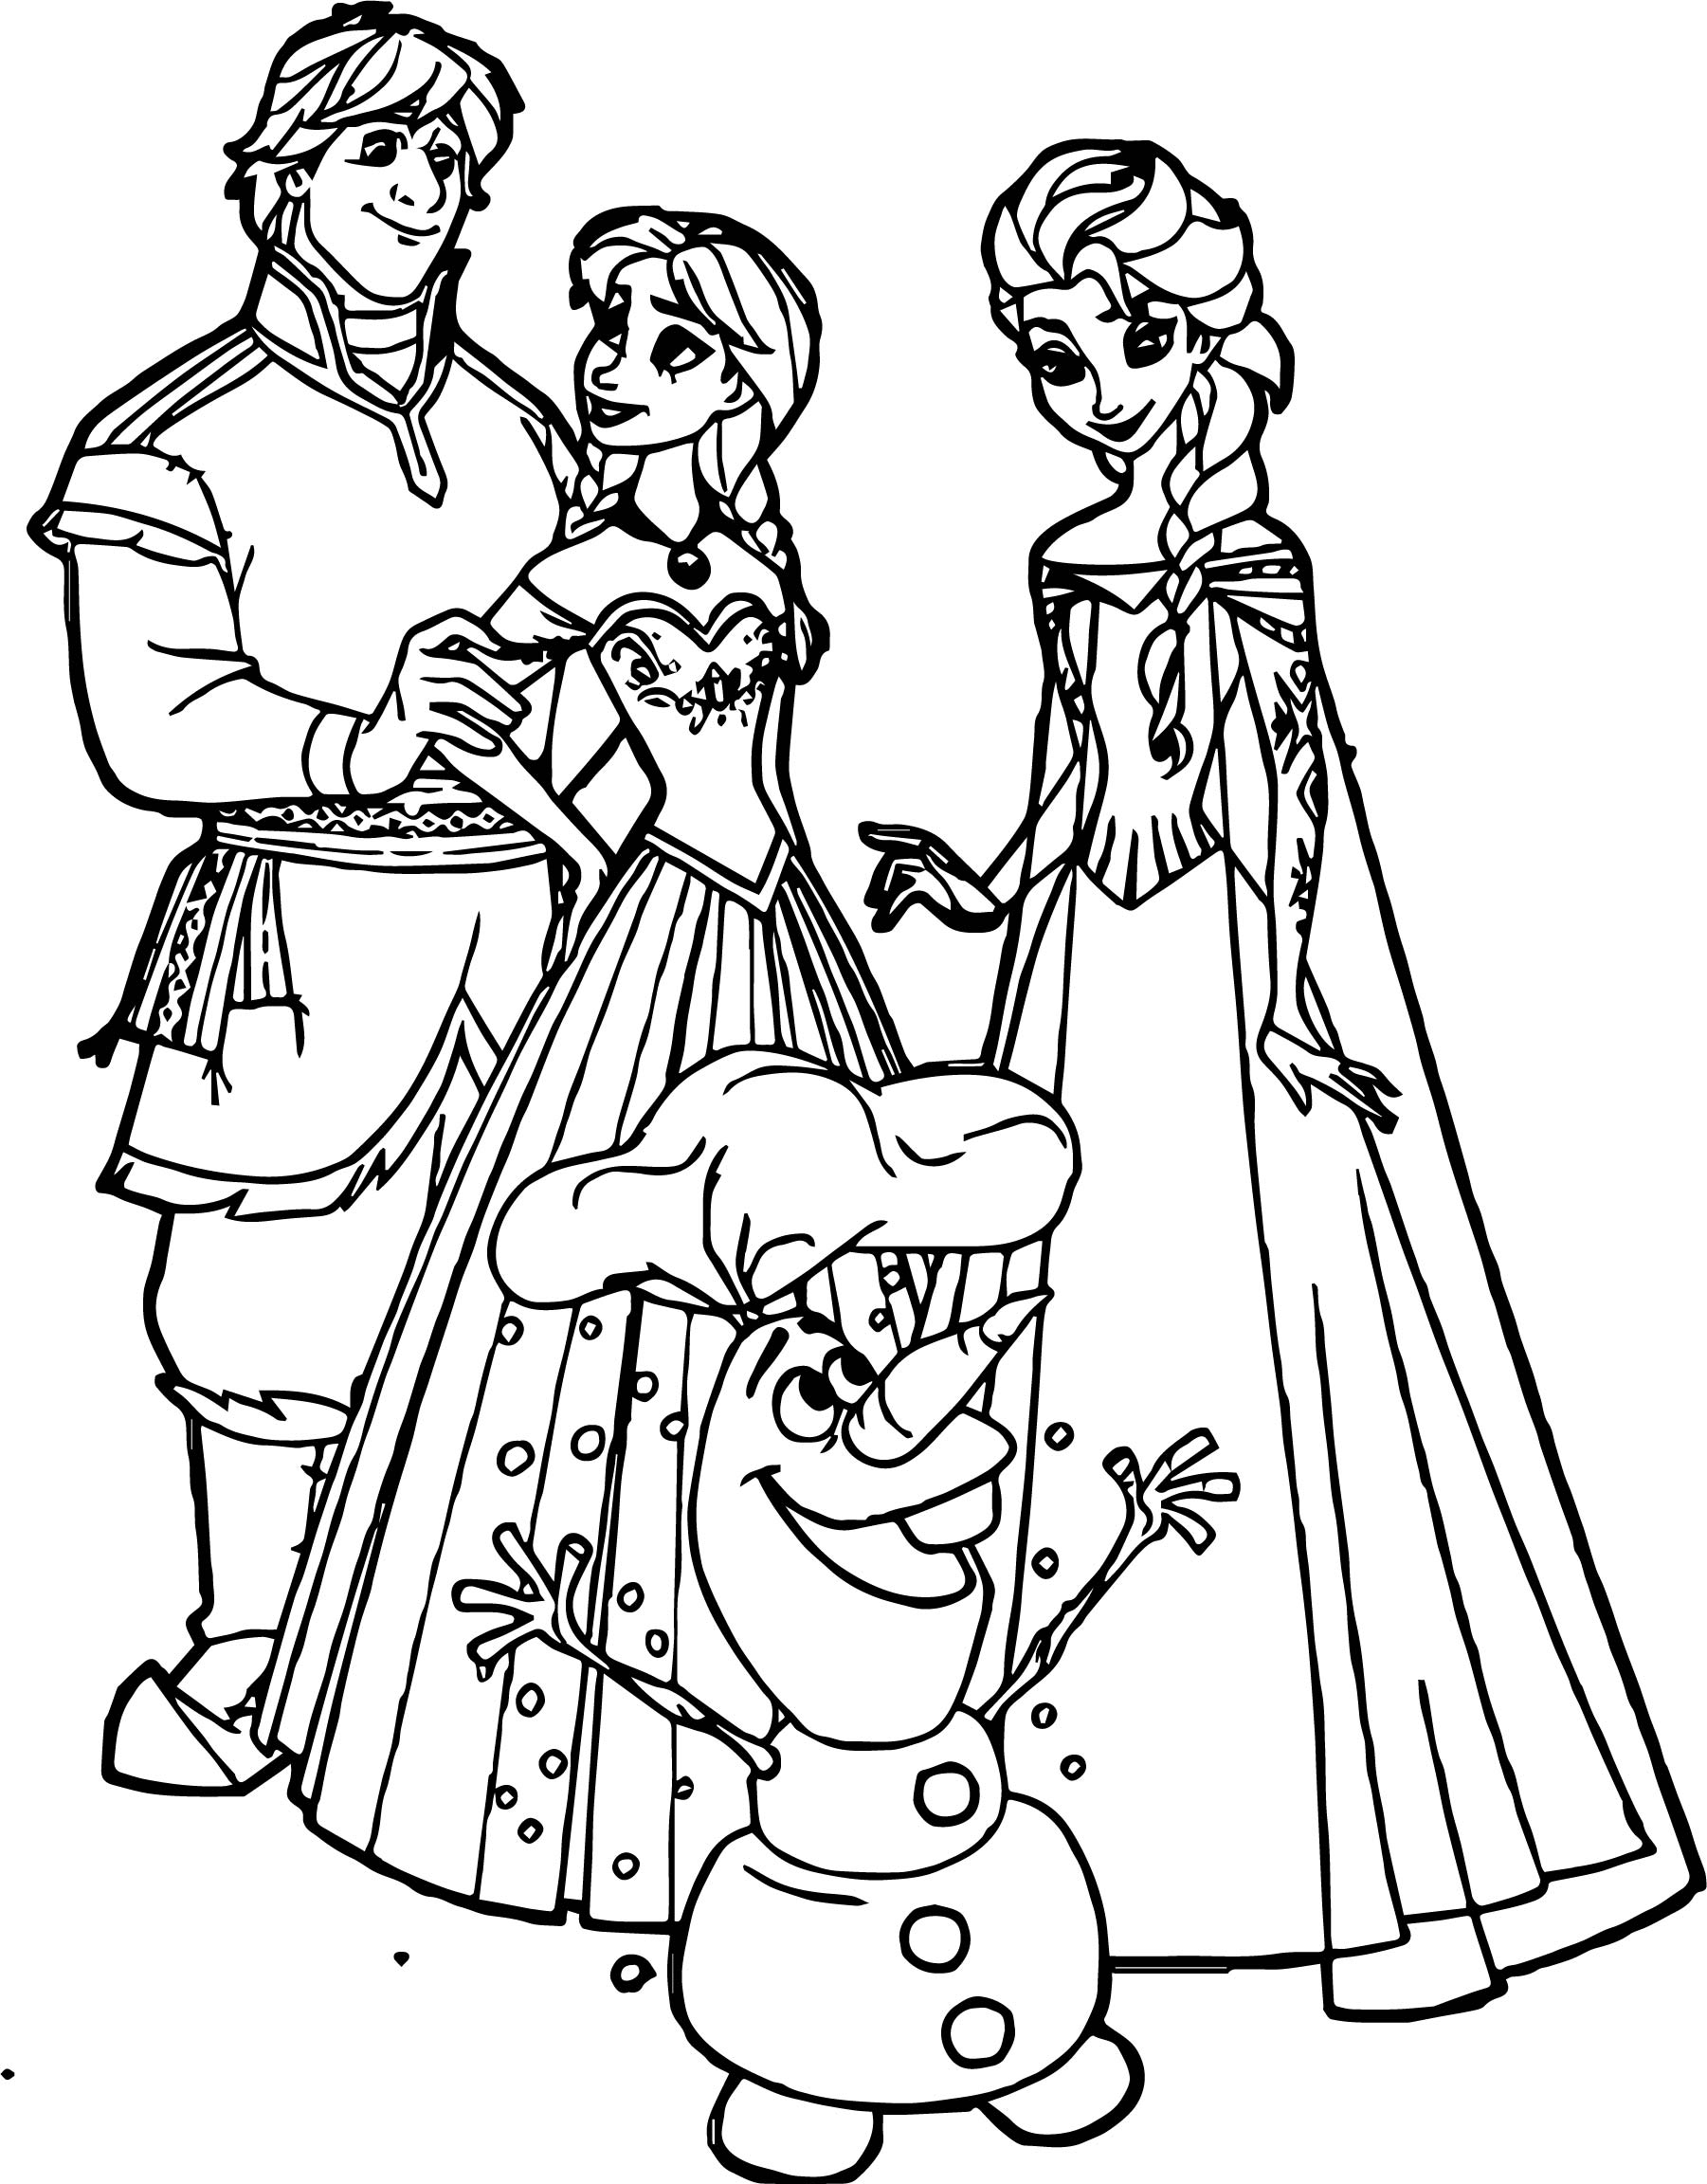 Olaf Coloring Pages Top Best Frozen Coloring Pages Free Printable